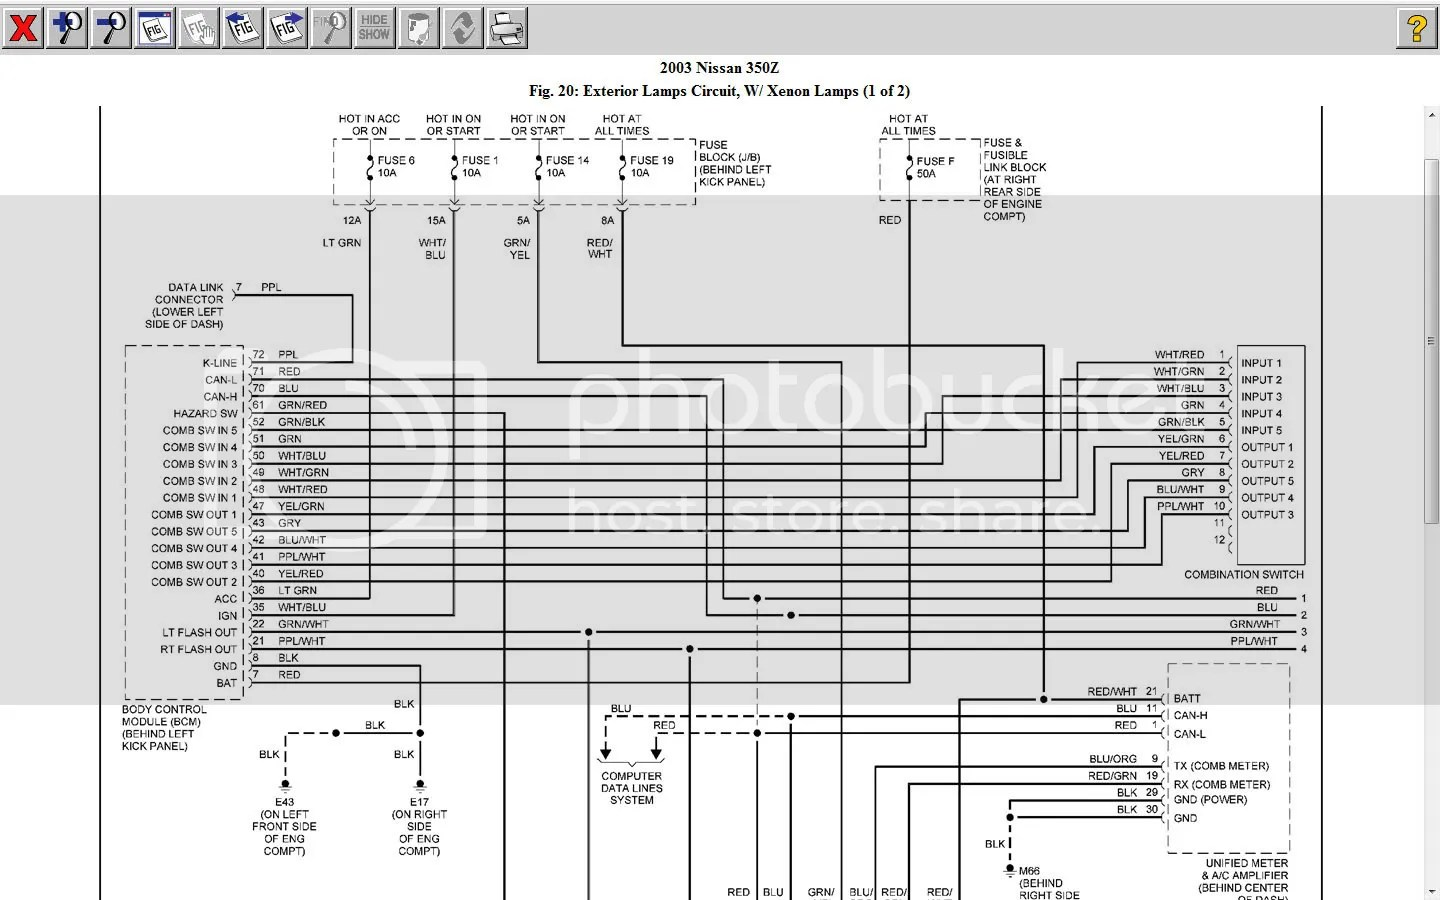 Tails1 1?resize=665%2C416 2003 nissan 350z bose wiring diagram wiring diagram 2003 nissan 350z bose wiring diagram at readyjetset.co